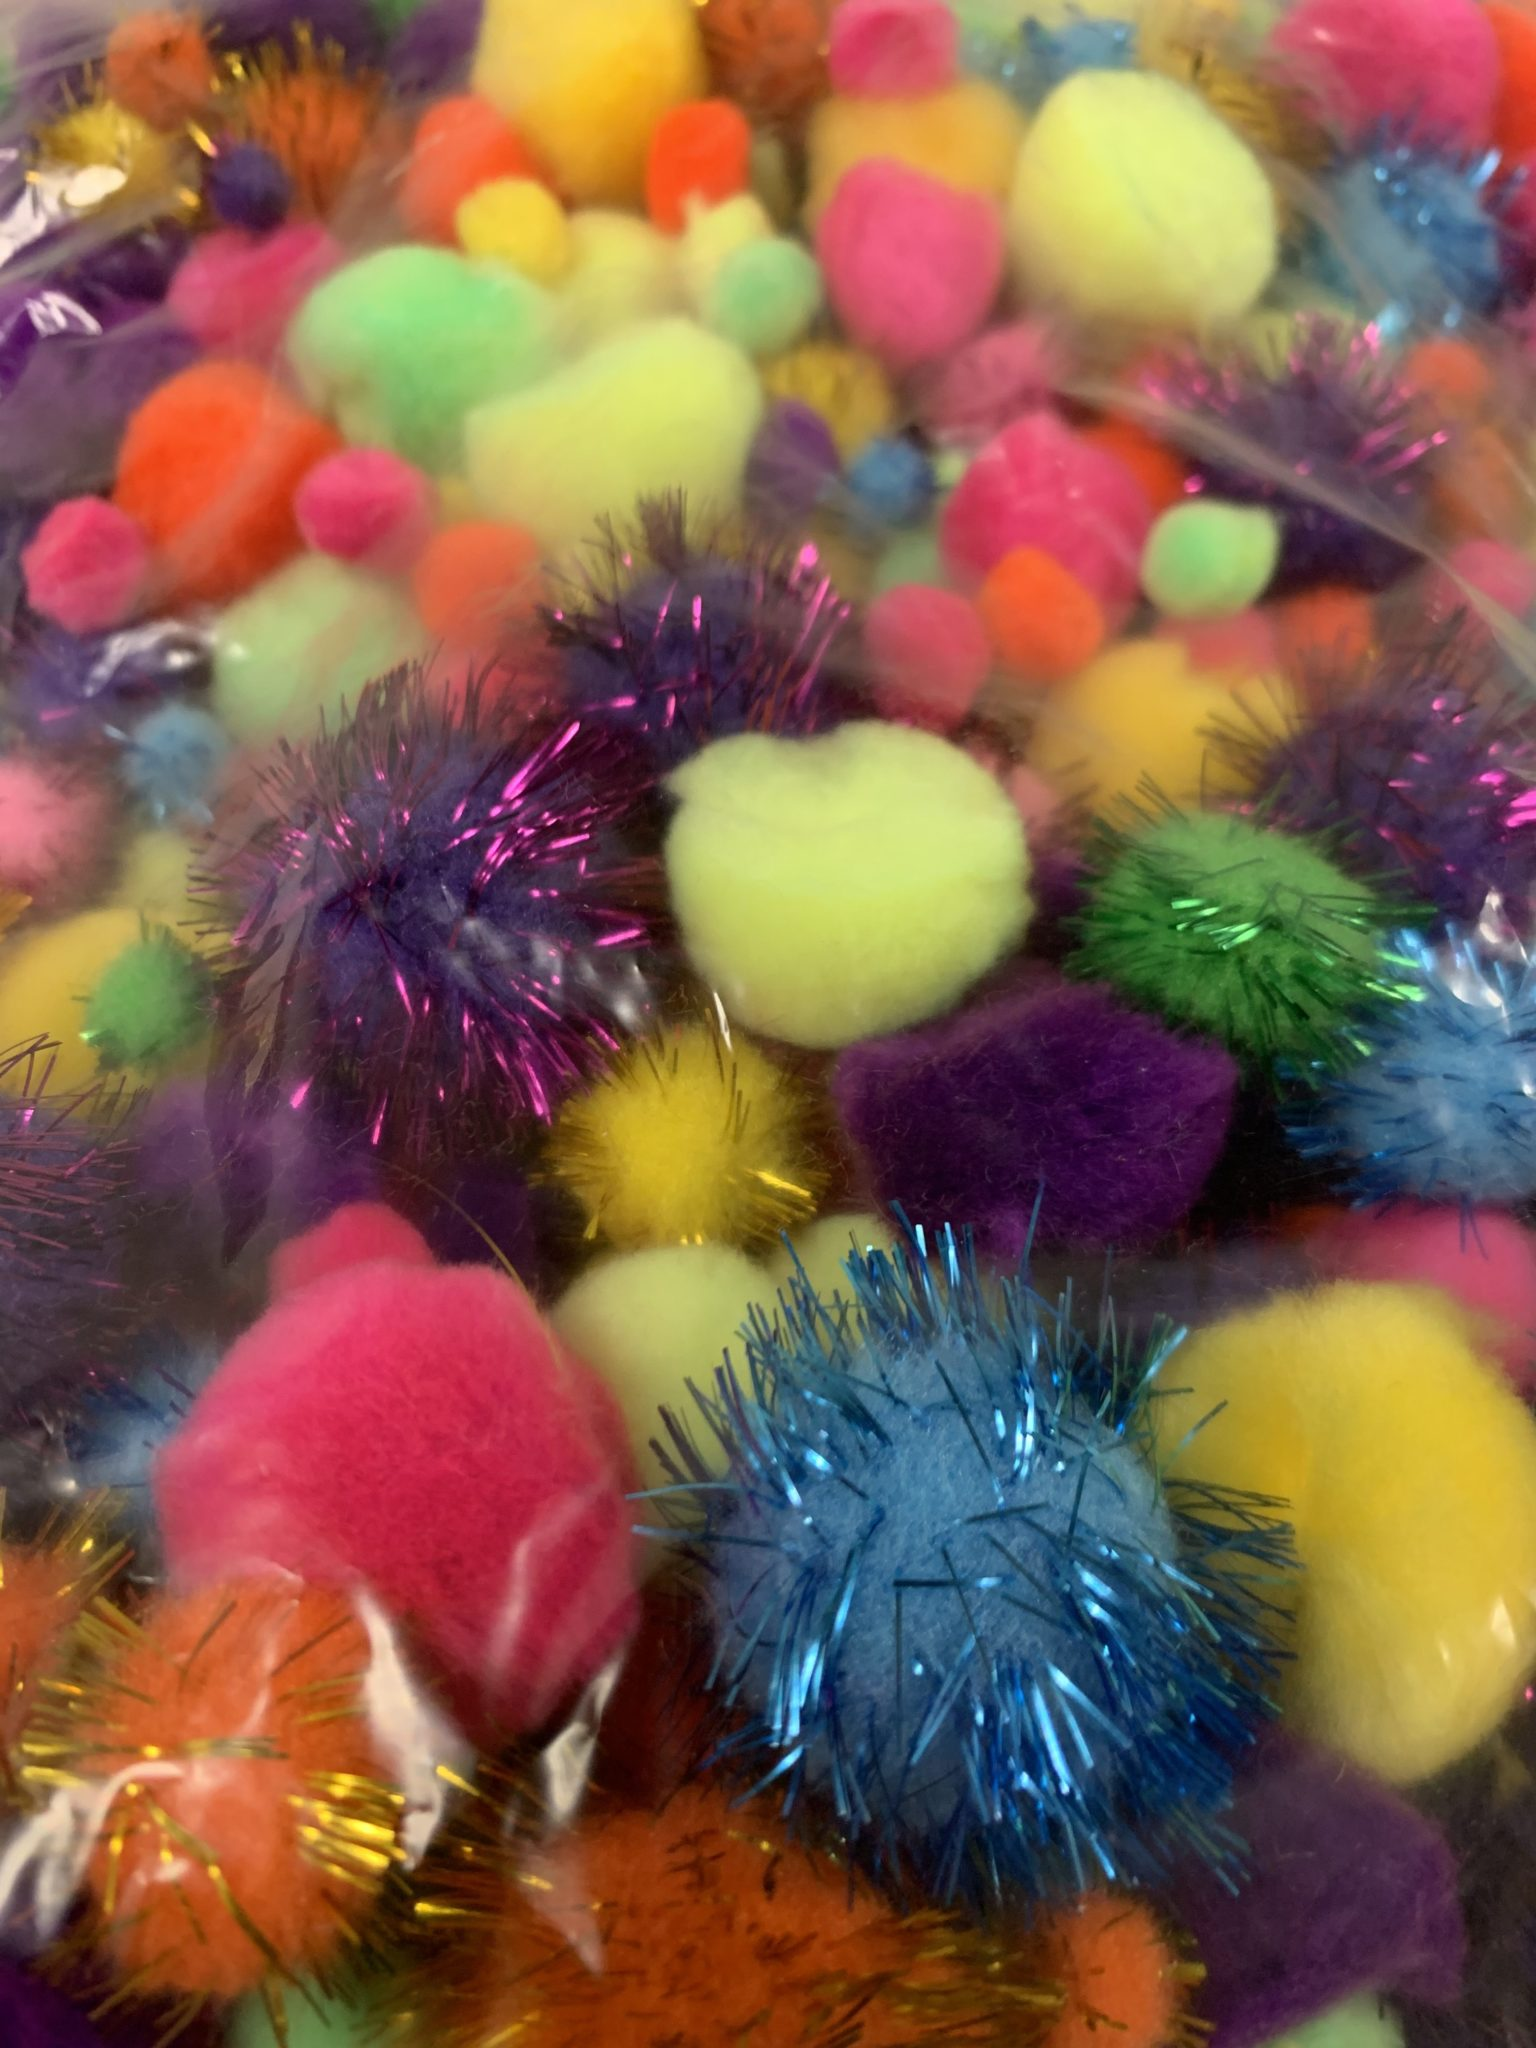 Clear plastic bag of multicolored pom-poms.